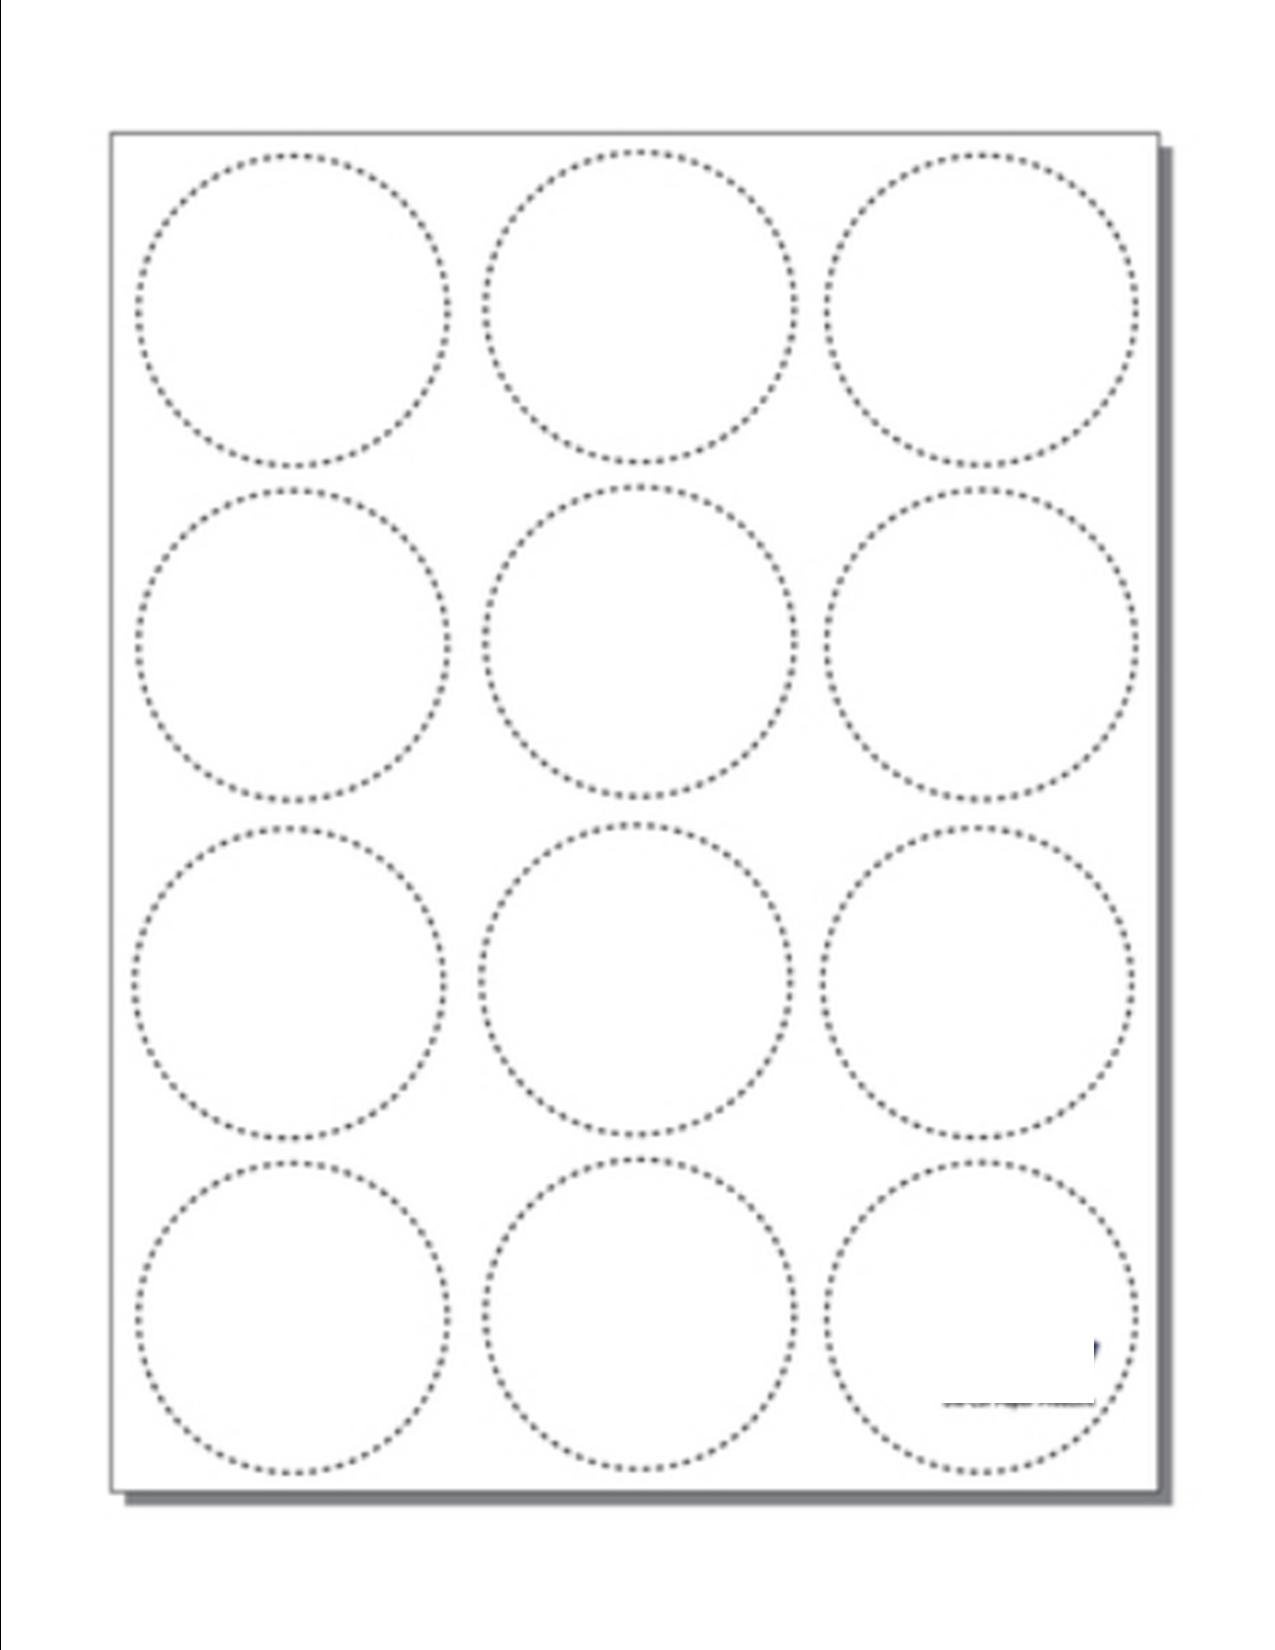 Print-Ready 2-1/4'' Diameter Circle-Perforated Button Blanks, 12-UP on 8-1/2'' x 11'' White 24lb Bond Paper - 100 Sheets / 1200 Buttons